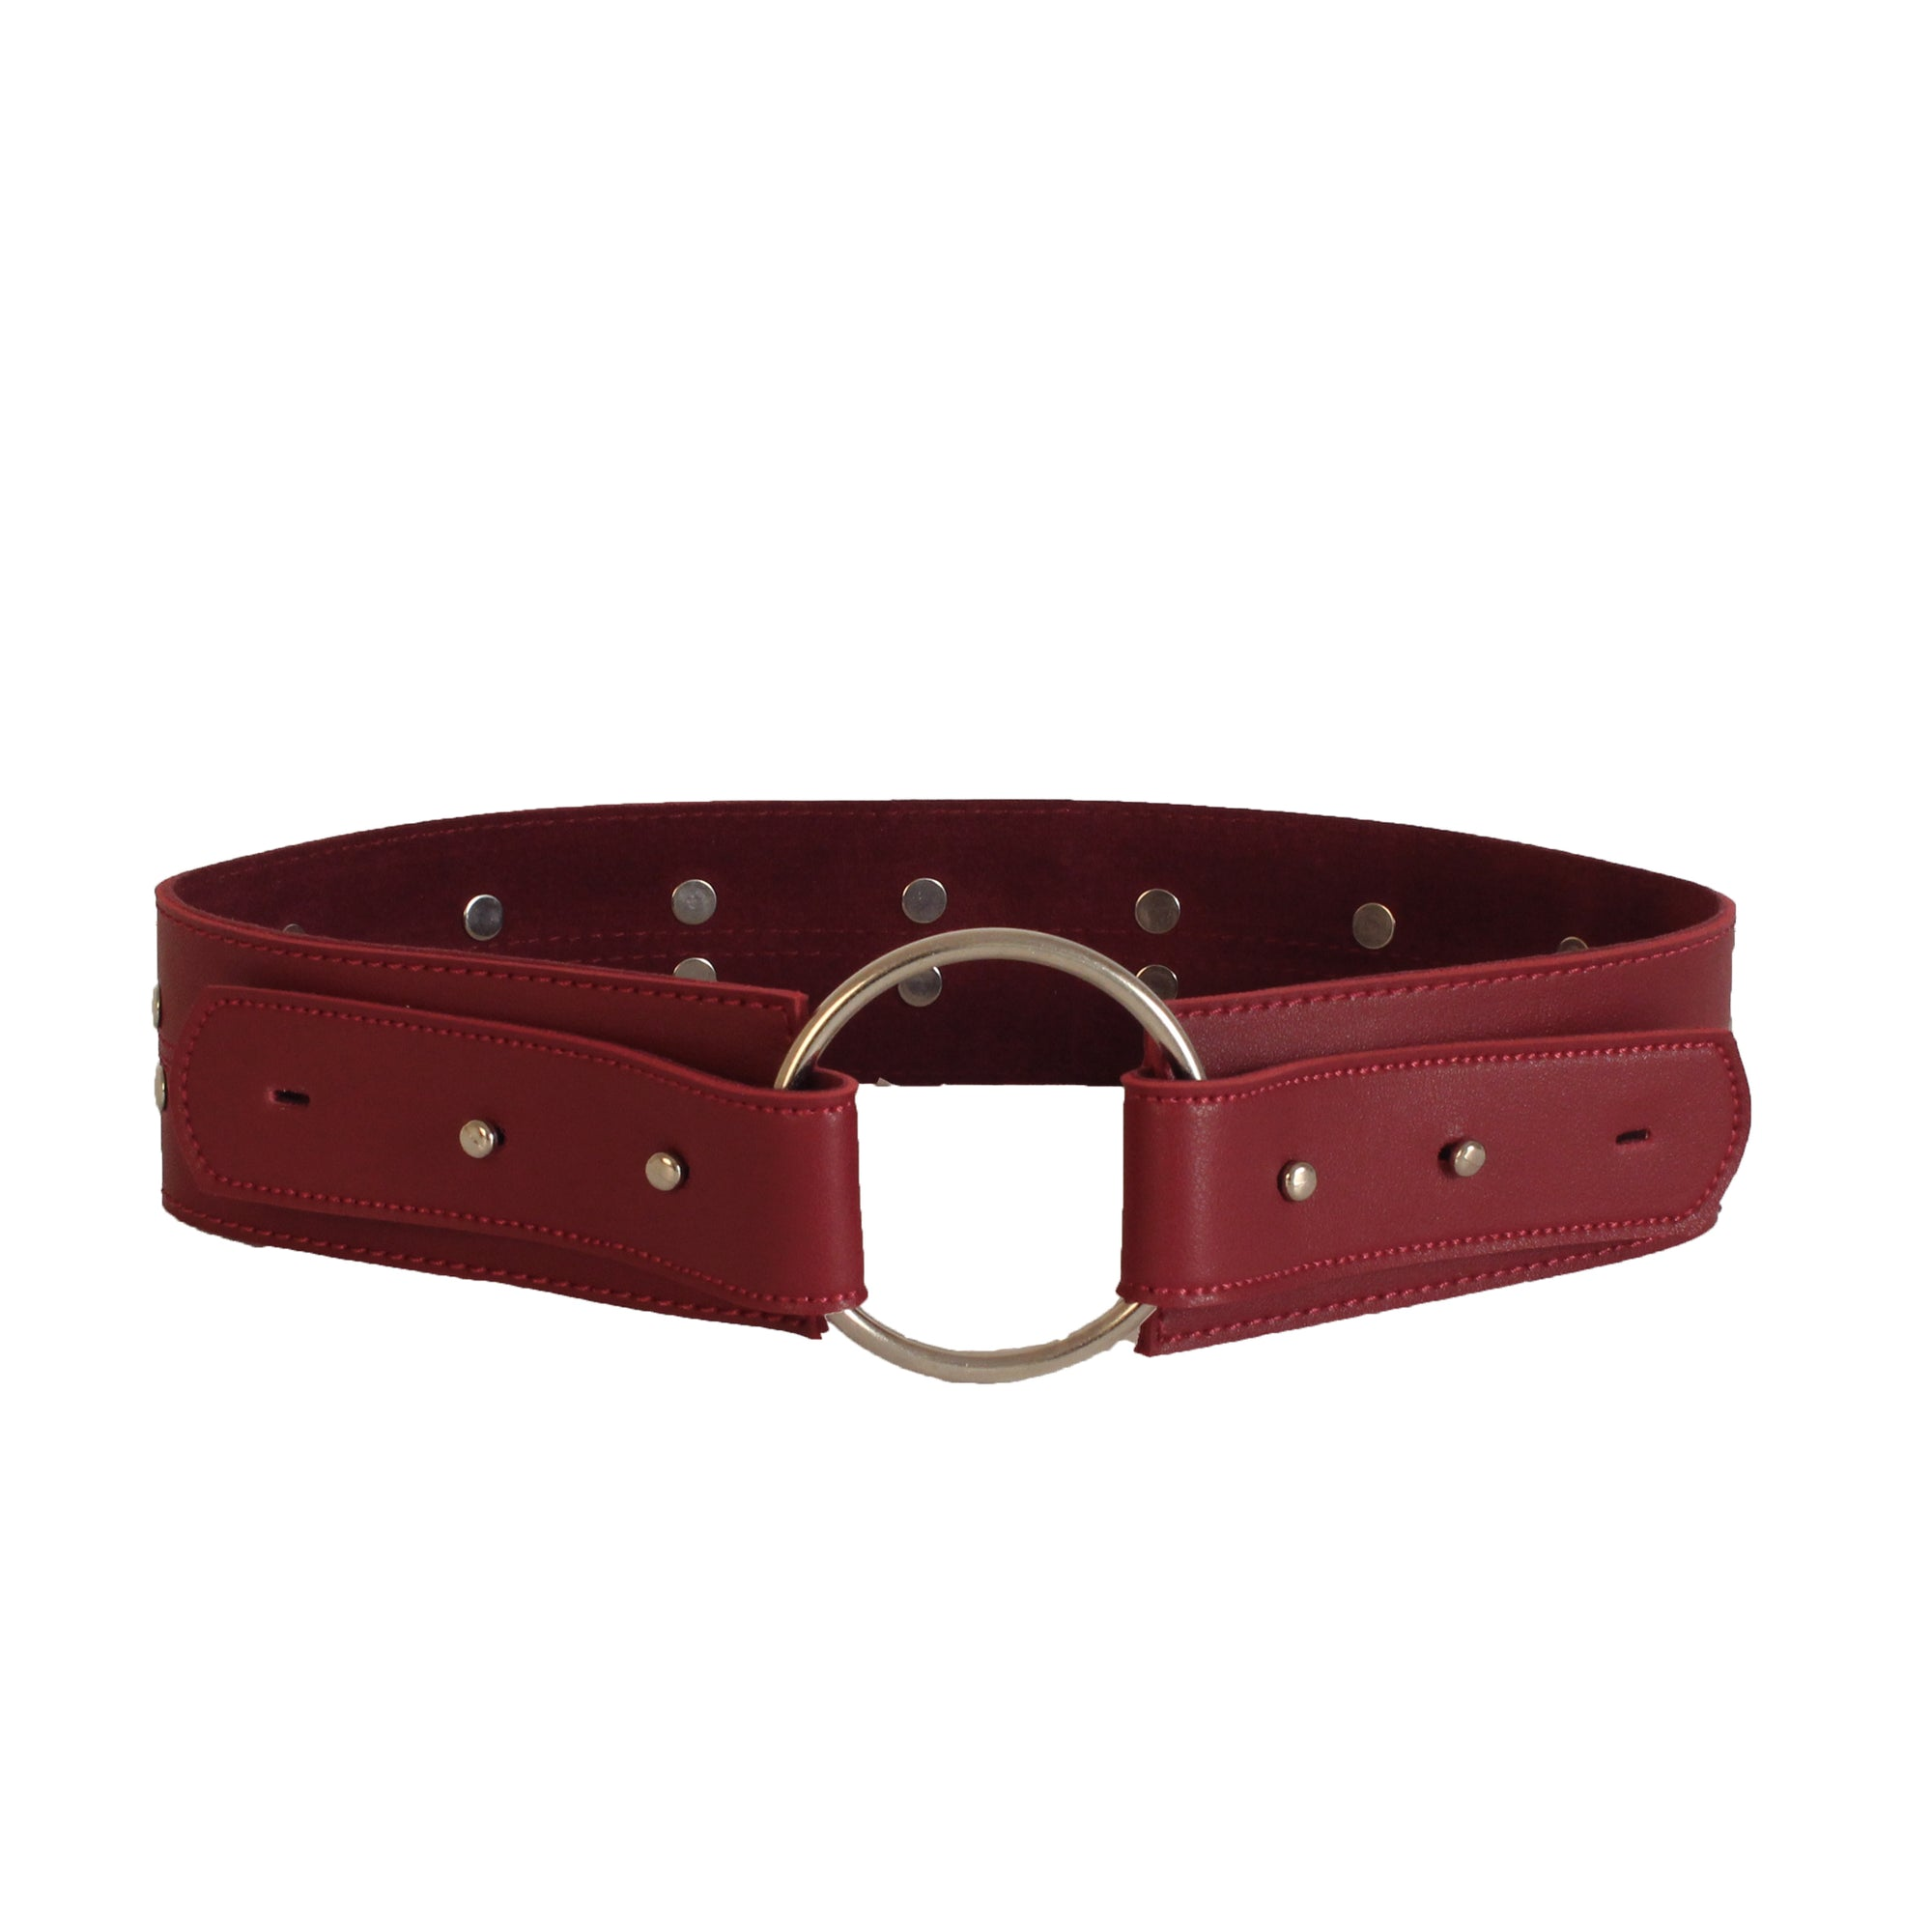 Gladiator Belt Burgundy